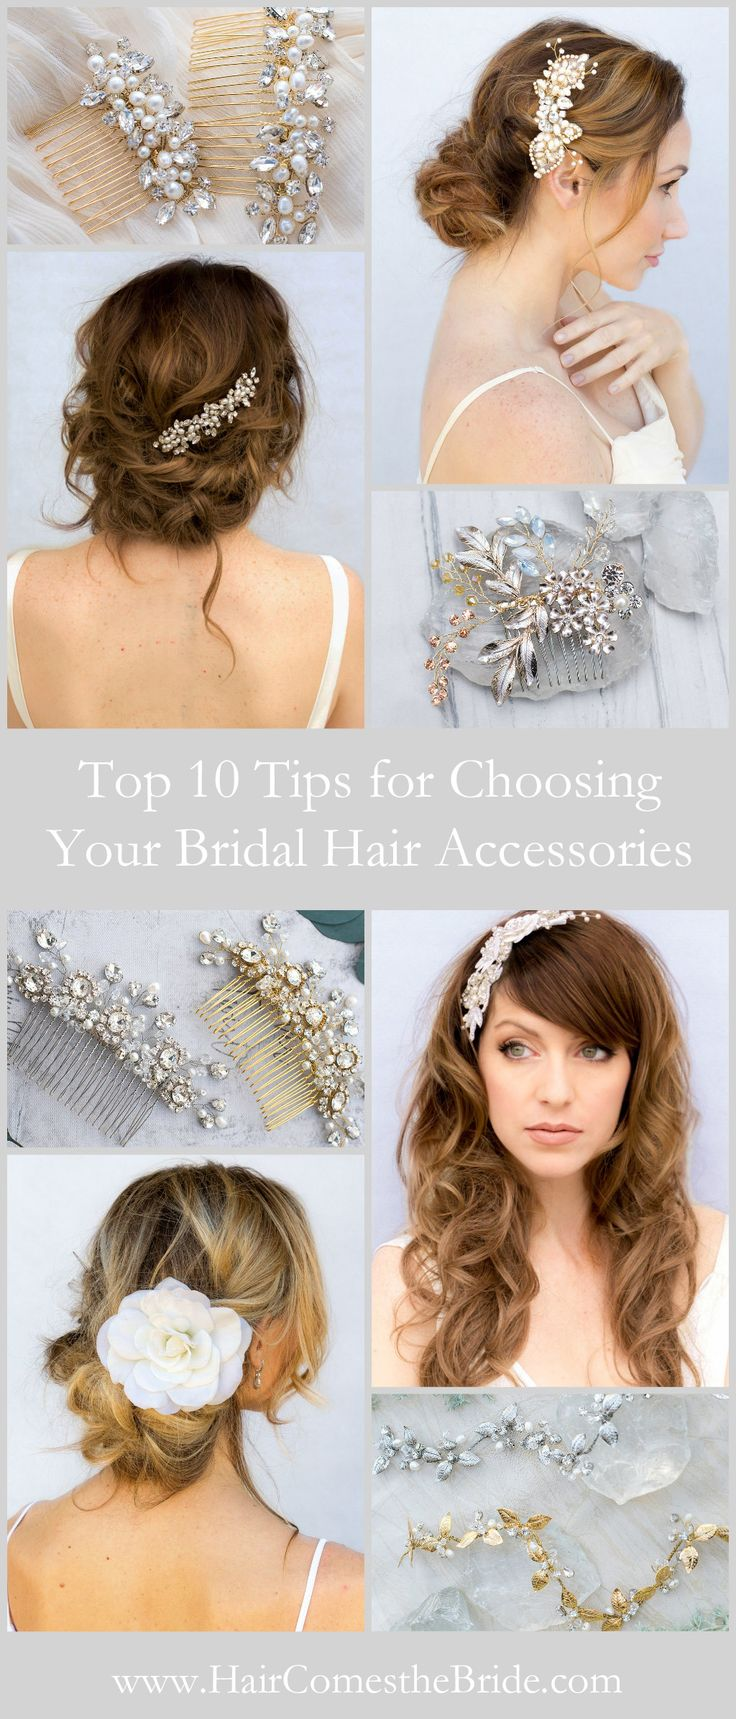 Hair accessories melbourne - Best 25 1920s Hair Accessories Ideas On Pinterest 1920s Wedding Hair Vintage Headpiece And Diy Gatsby Hair Accessories